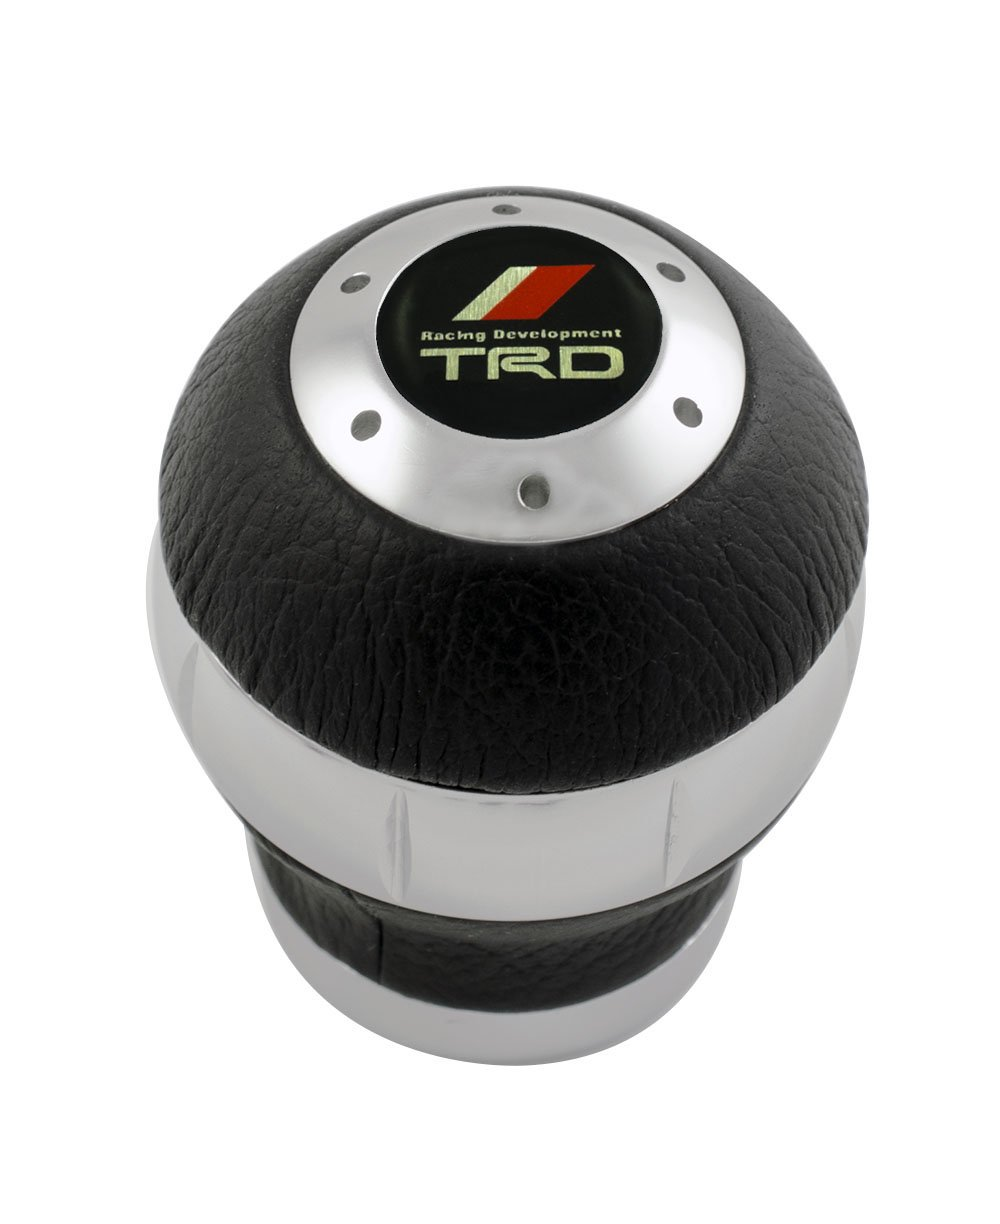 12x1.25mm Threaded TRD BLACK LEATHER and SILVER Billet Aluminum ROUND Ball Shift knob for Toyota Racing Development Camry Celica Corolla Scion xA xB tC Supra MR2 Matrix Paseo Echo Venza Yaris Avalon Solara Spyder Tercel Tiara 2000GT Tacoma Tundra 1970's TA